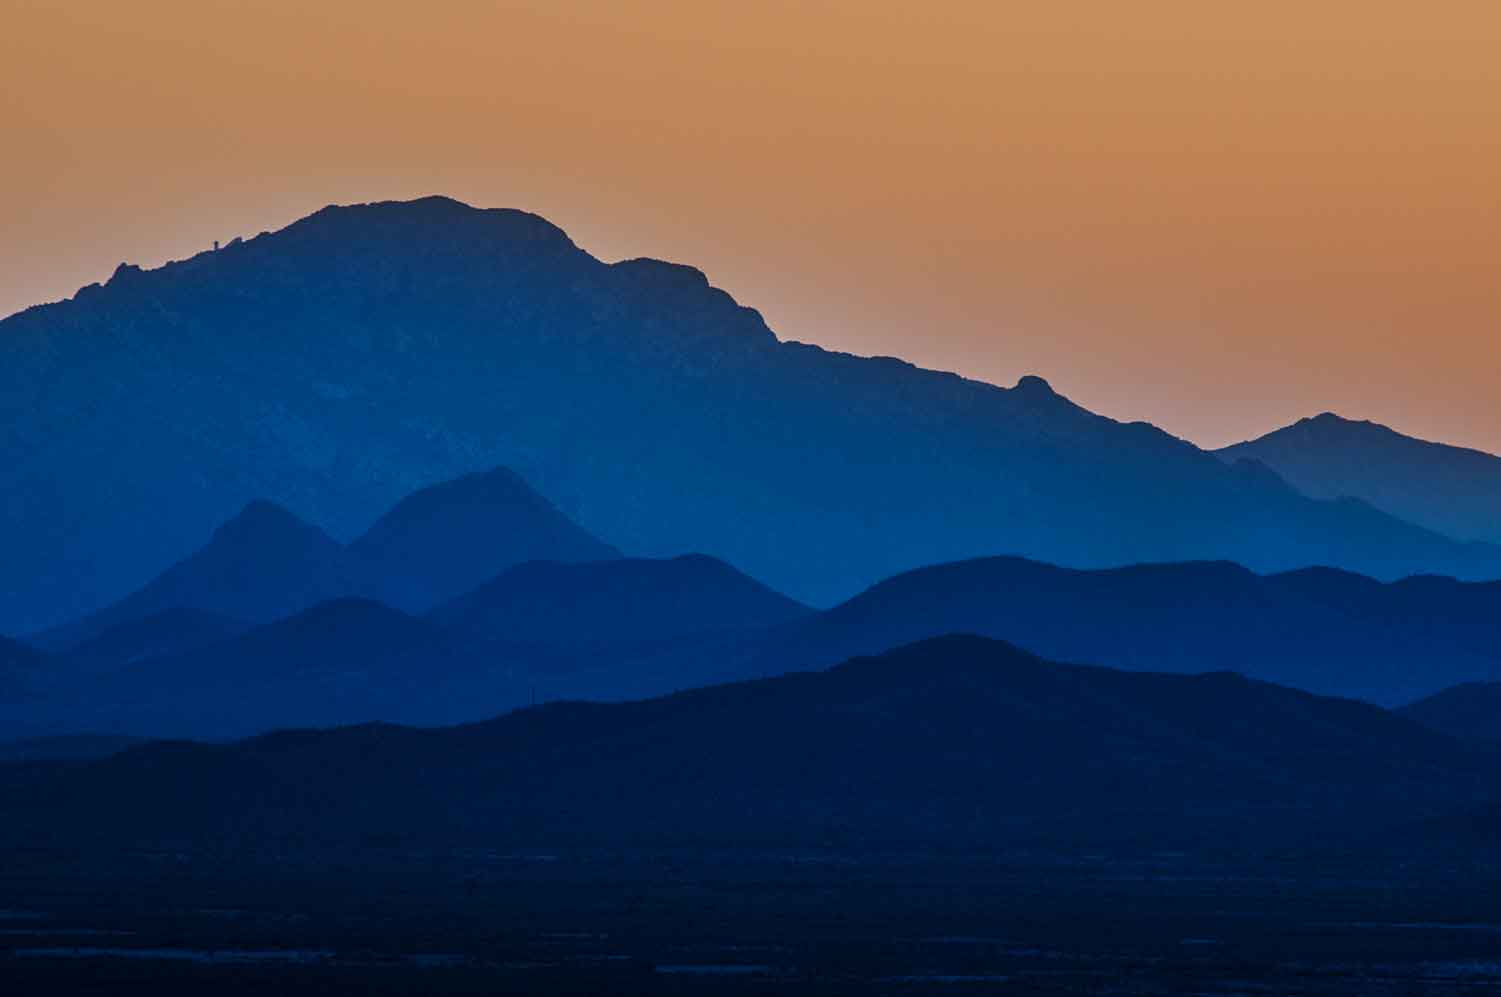 From the Tucson Mts. looking west